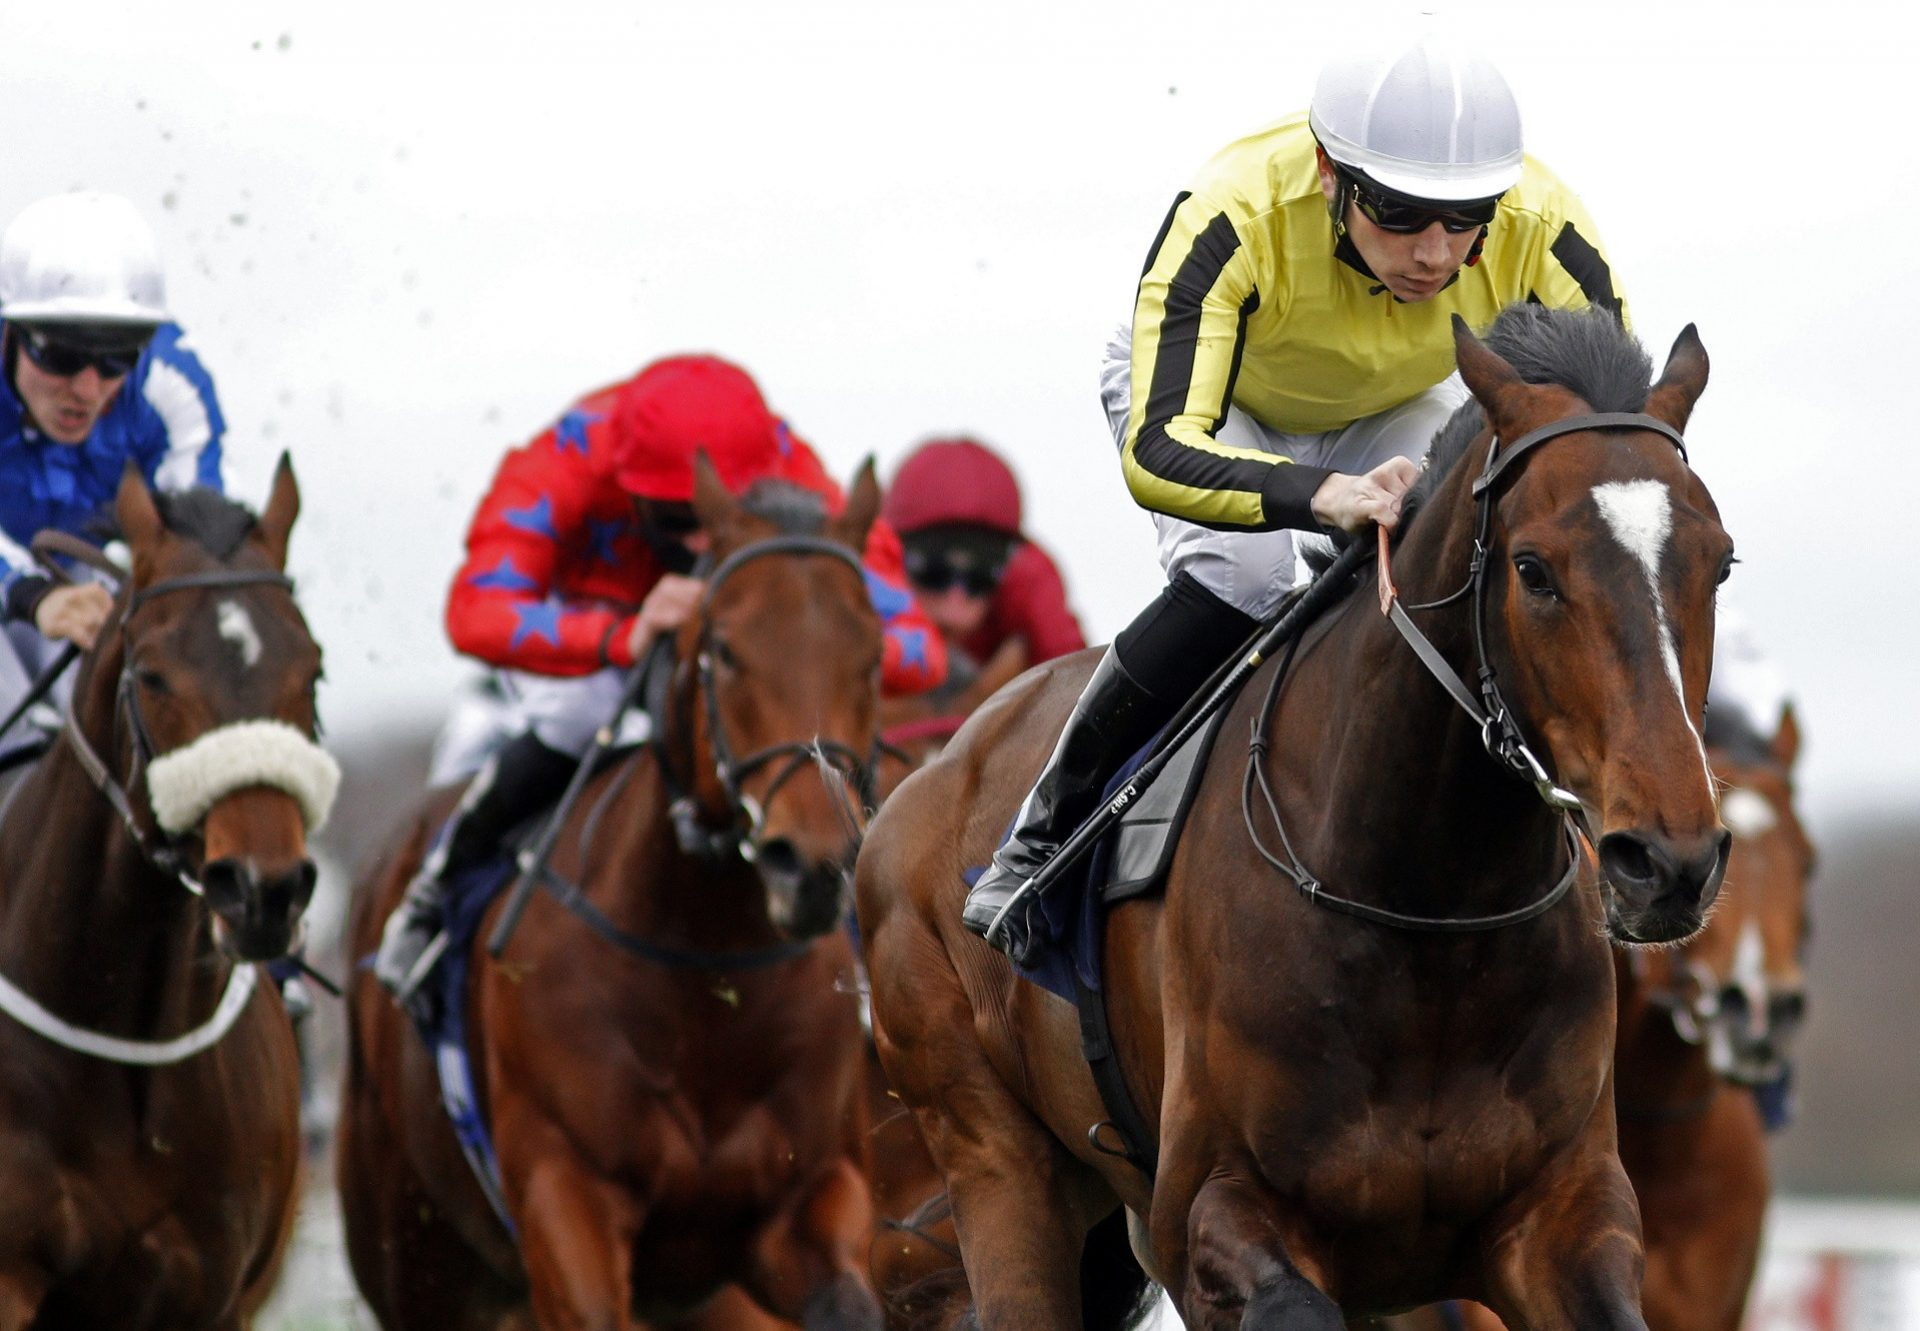 George Peabody (Holy Roman Emperor) winning at Doncaster